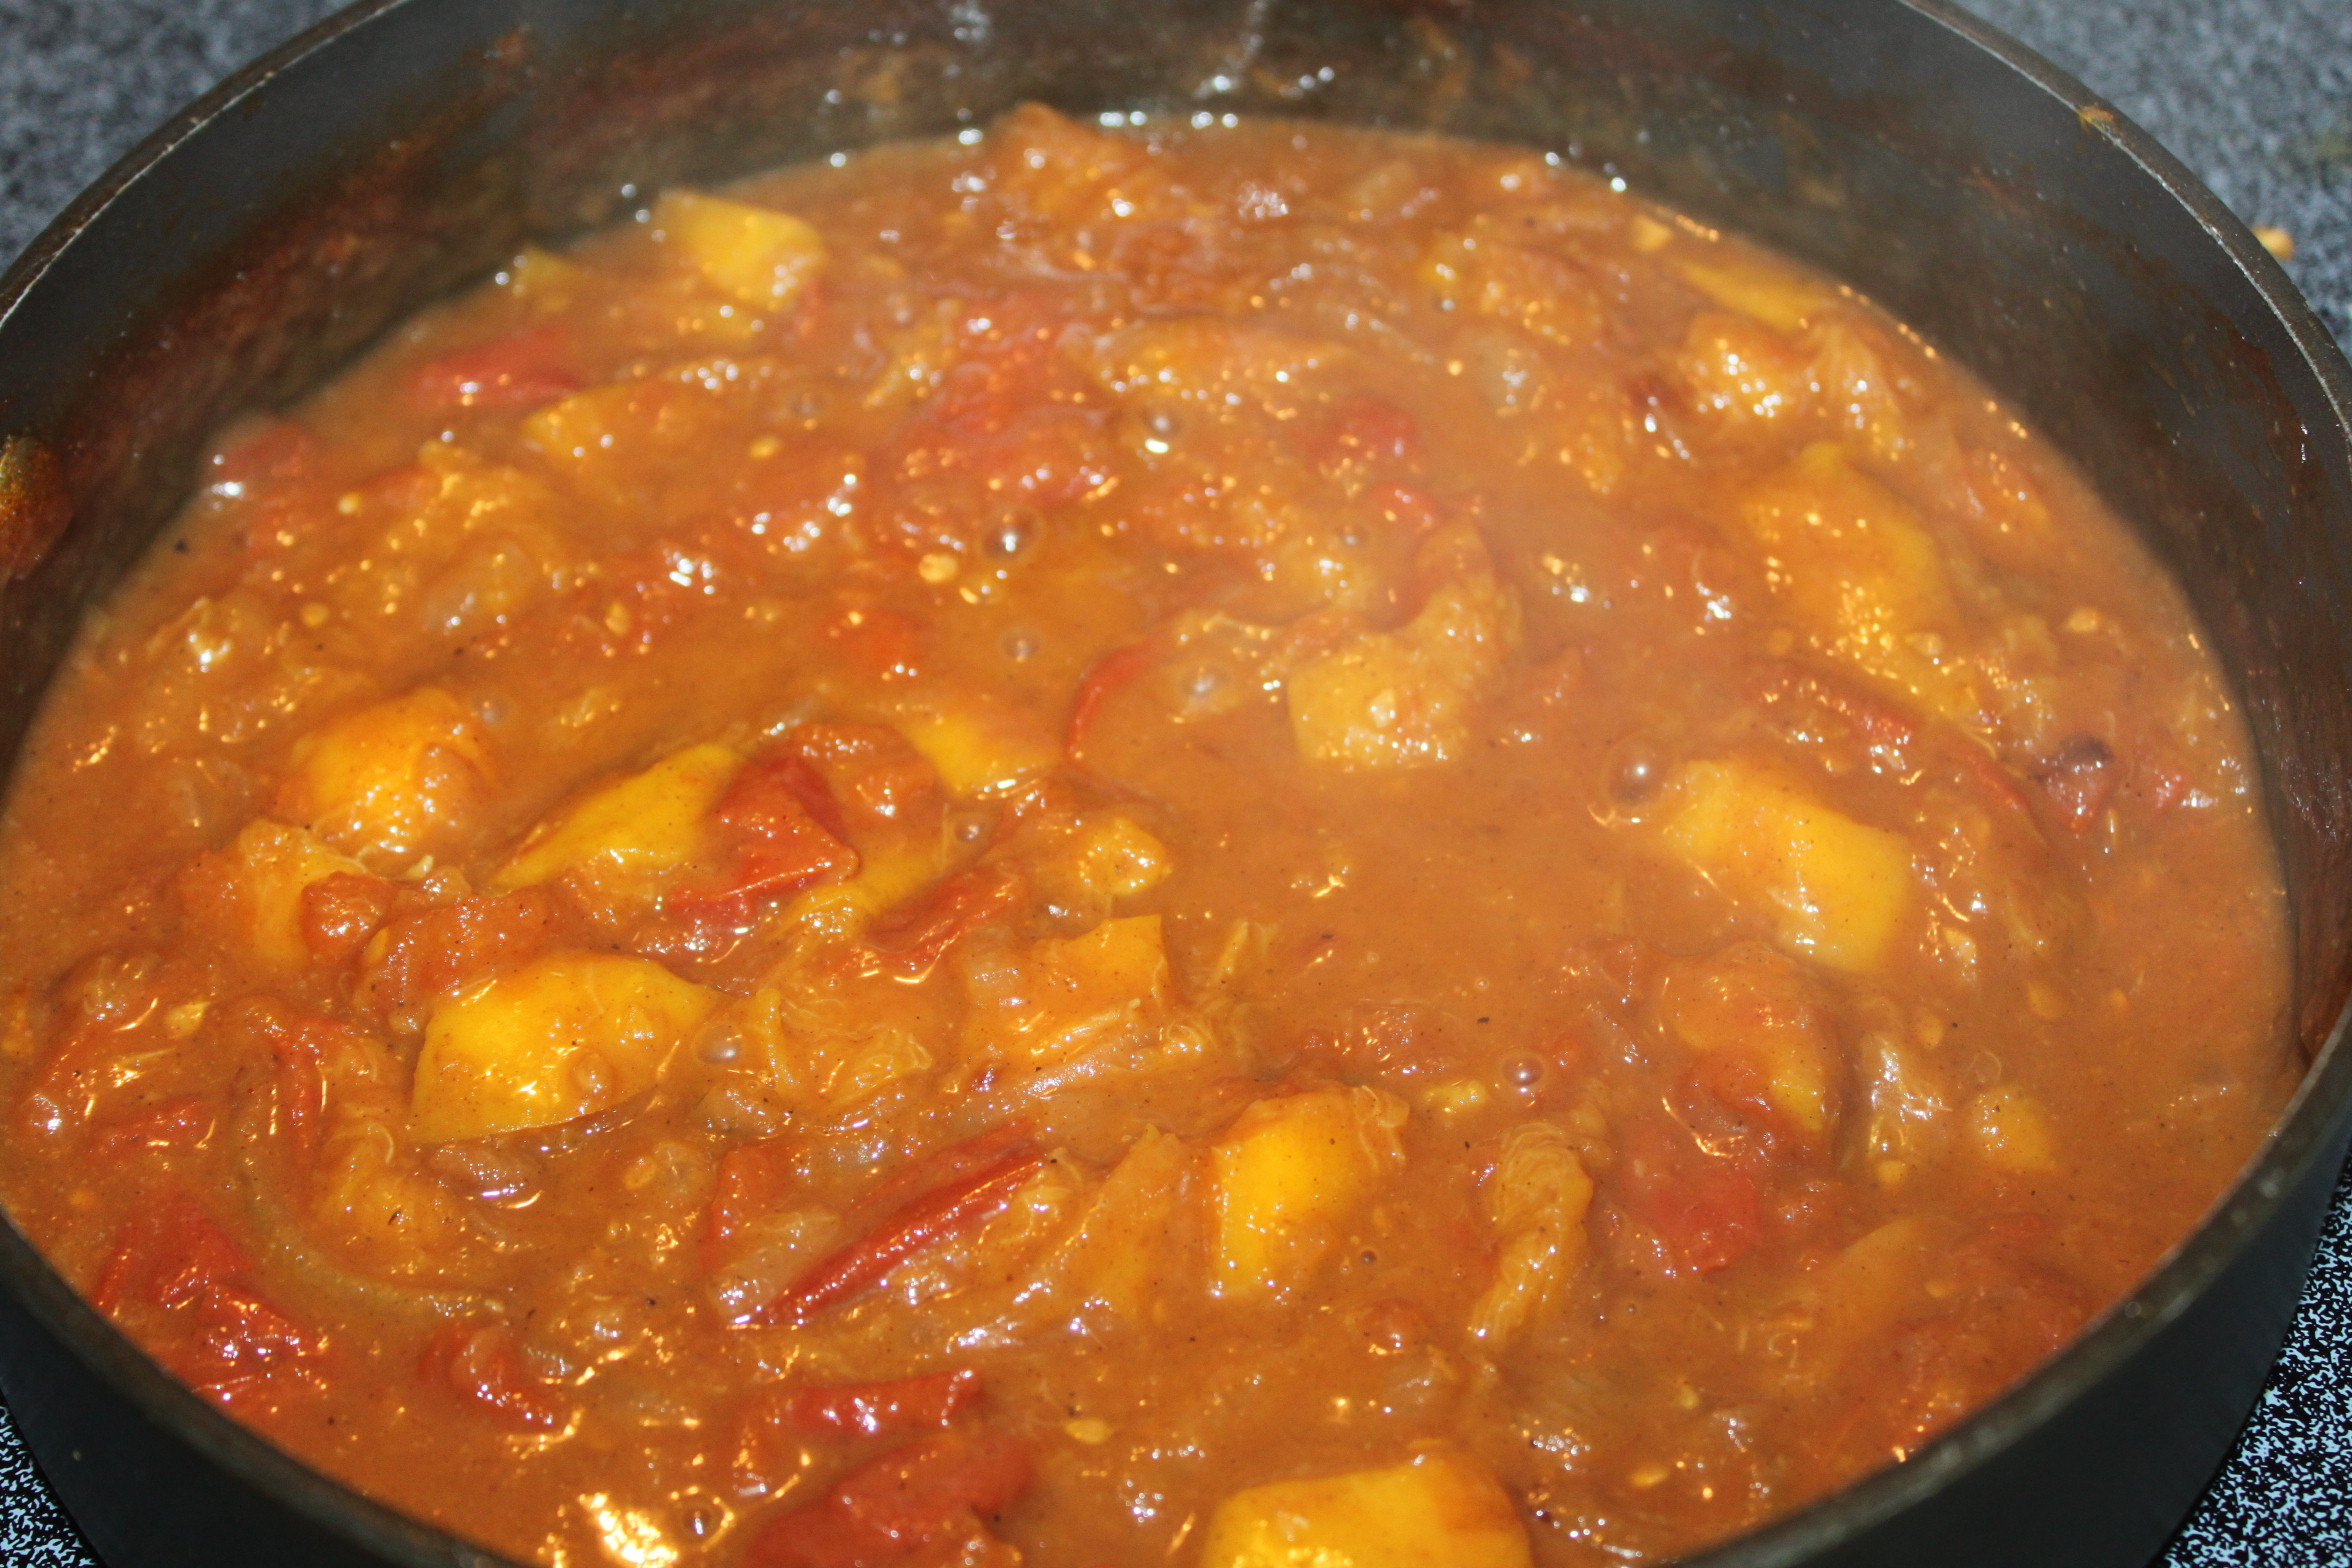 Peach Barbecue Sauce Recipe - A Summertime Favorite - Old World Garden ...